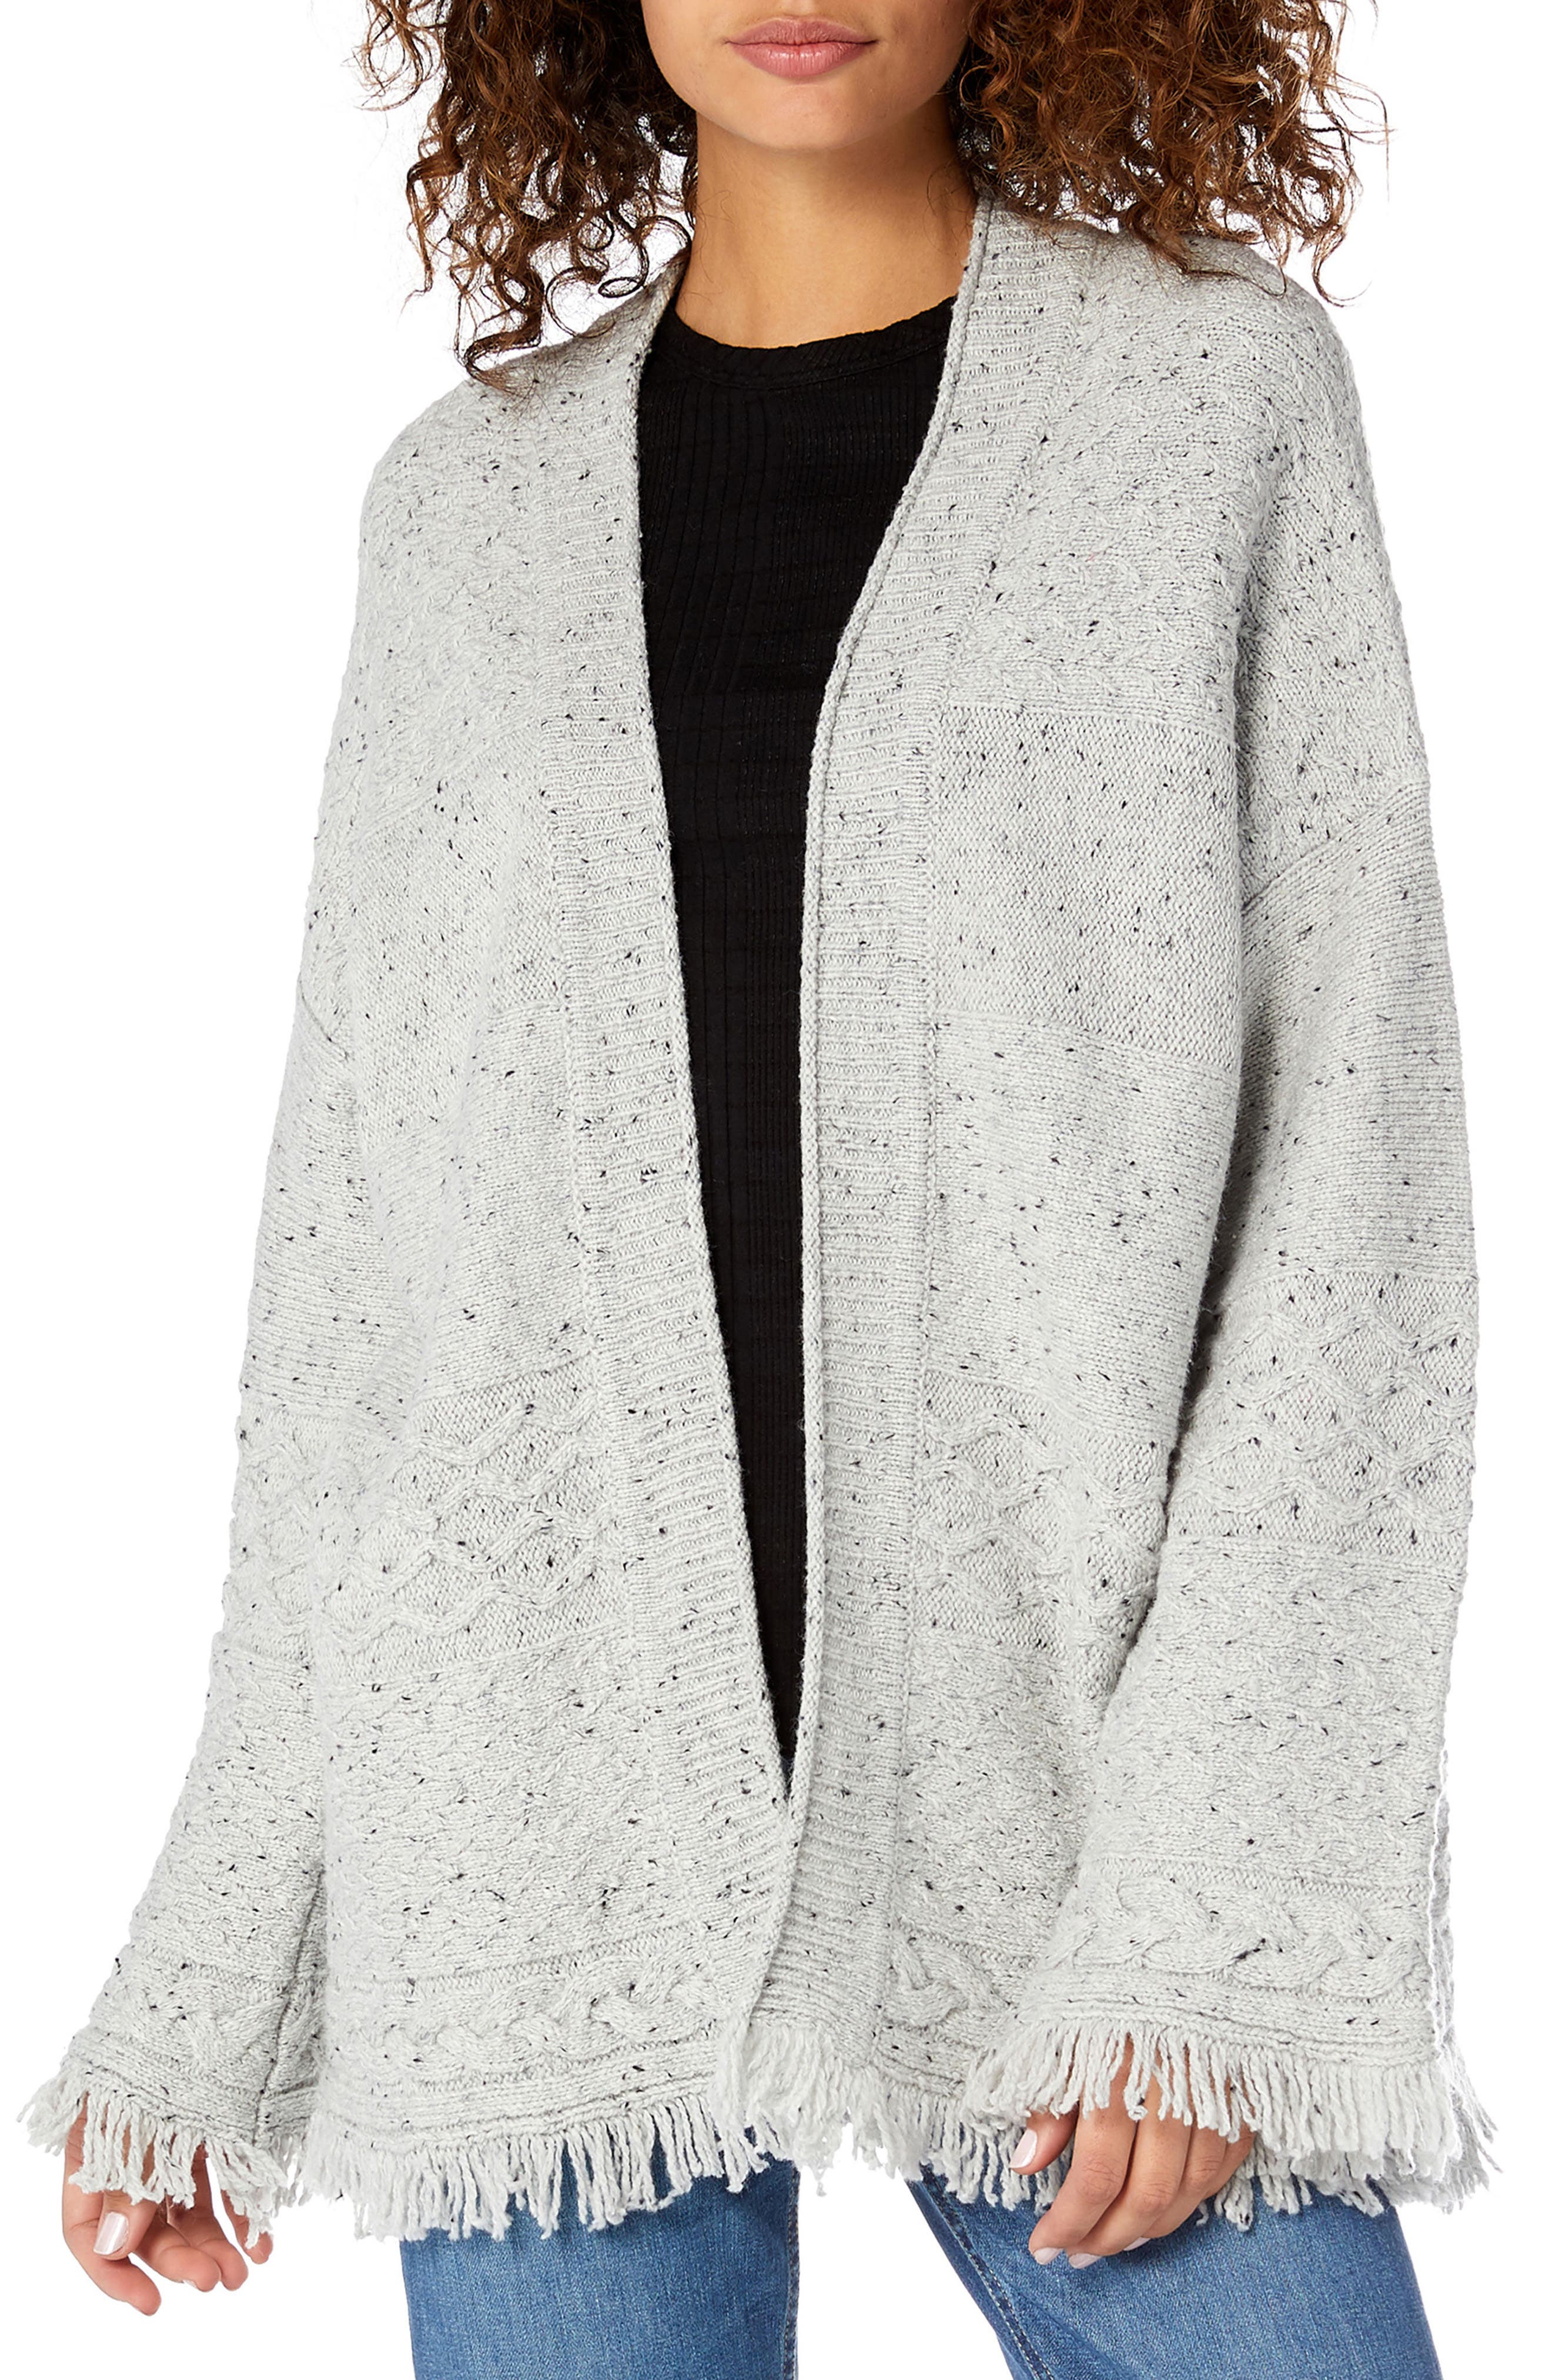 MICHAEL STARS Confetti Cable Bell Sleeve Cardigan in Crescent